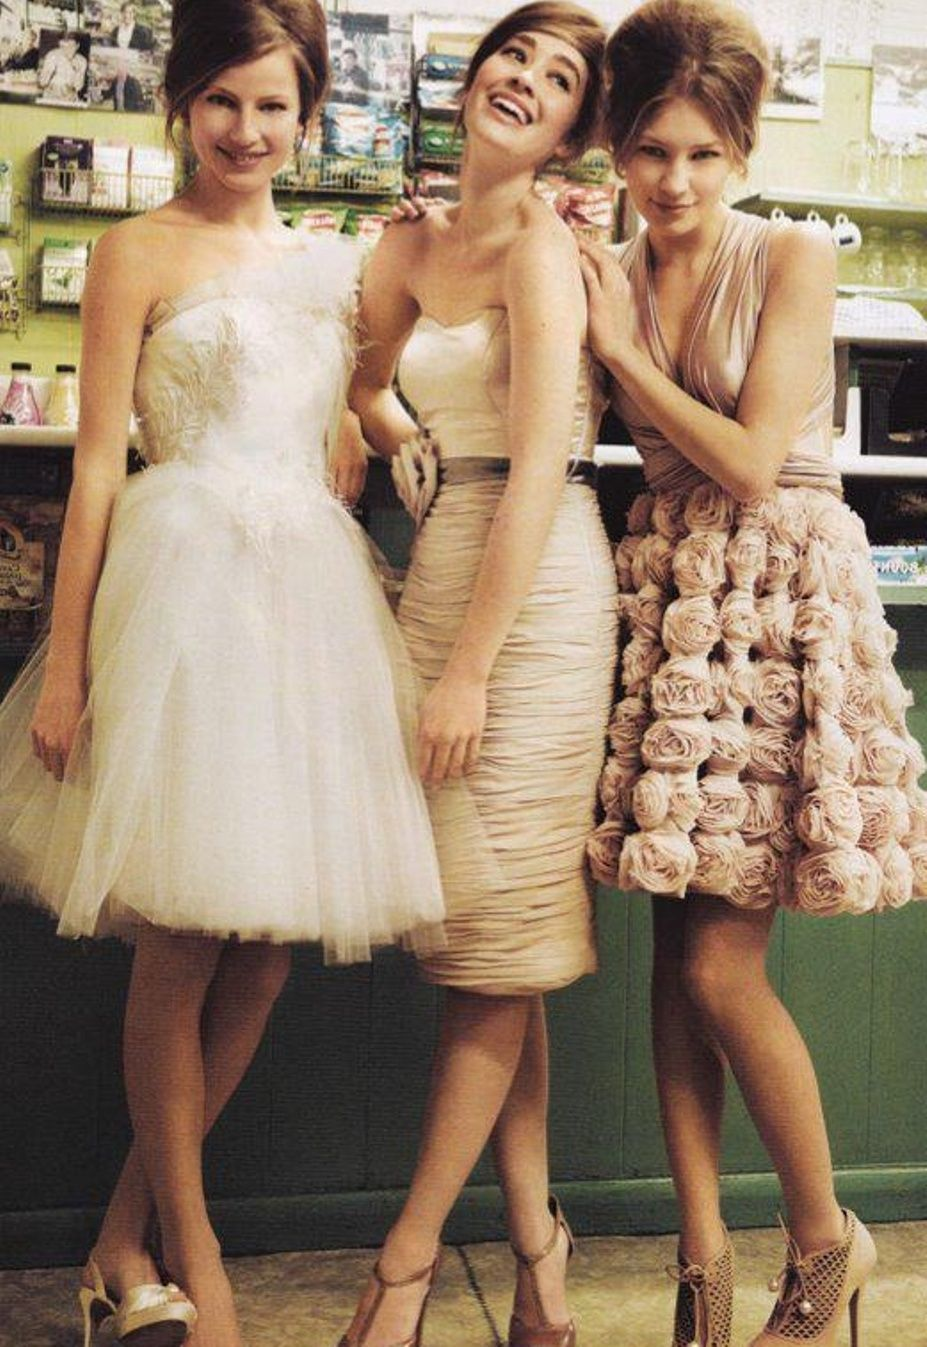 Cute alternative bridesmaid dresses bridesmaid dresses cute alternative bridesmaid dresses ombrellifo Image collections